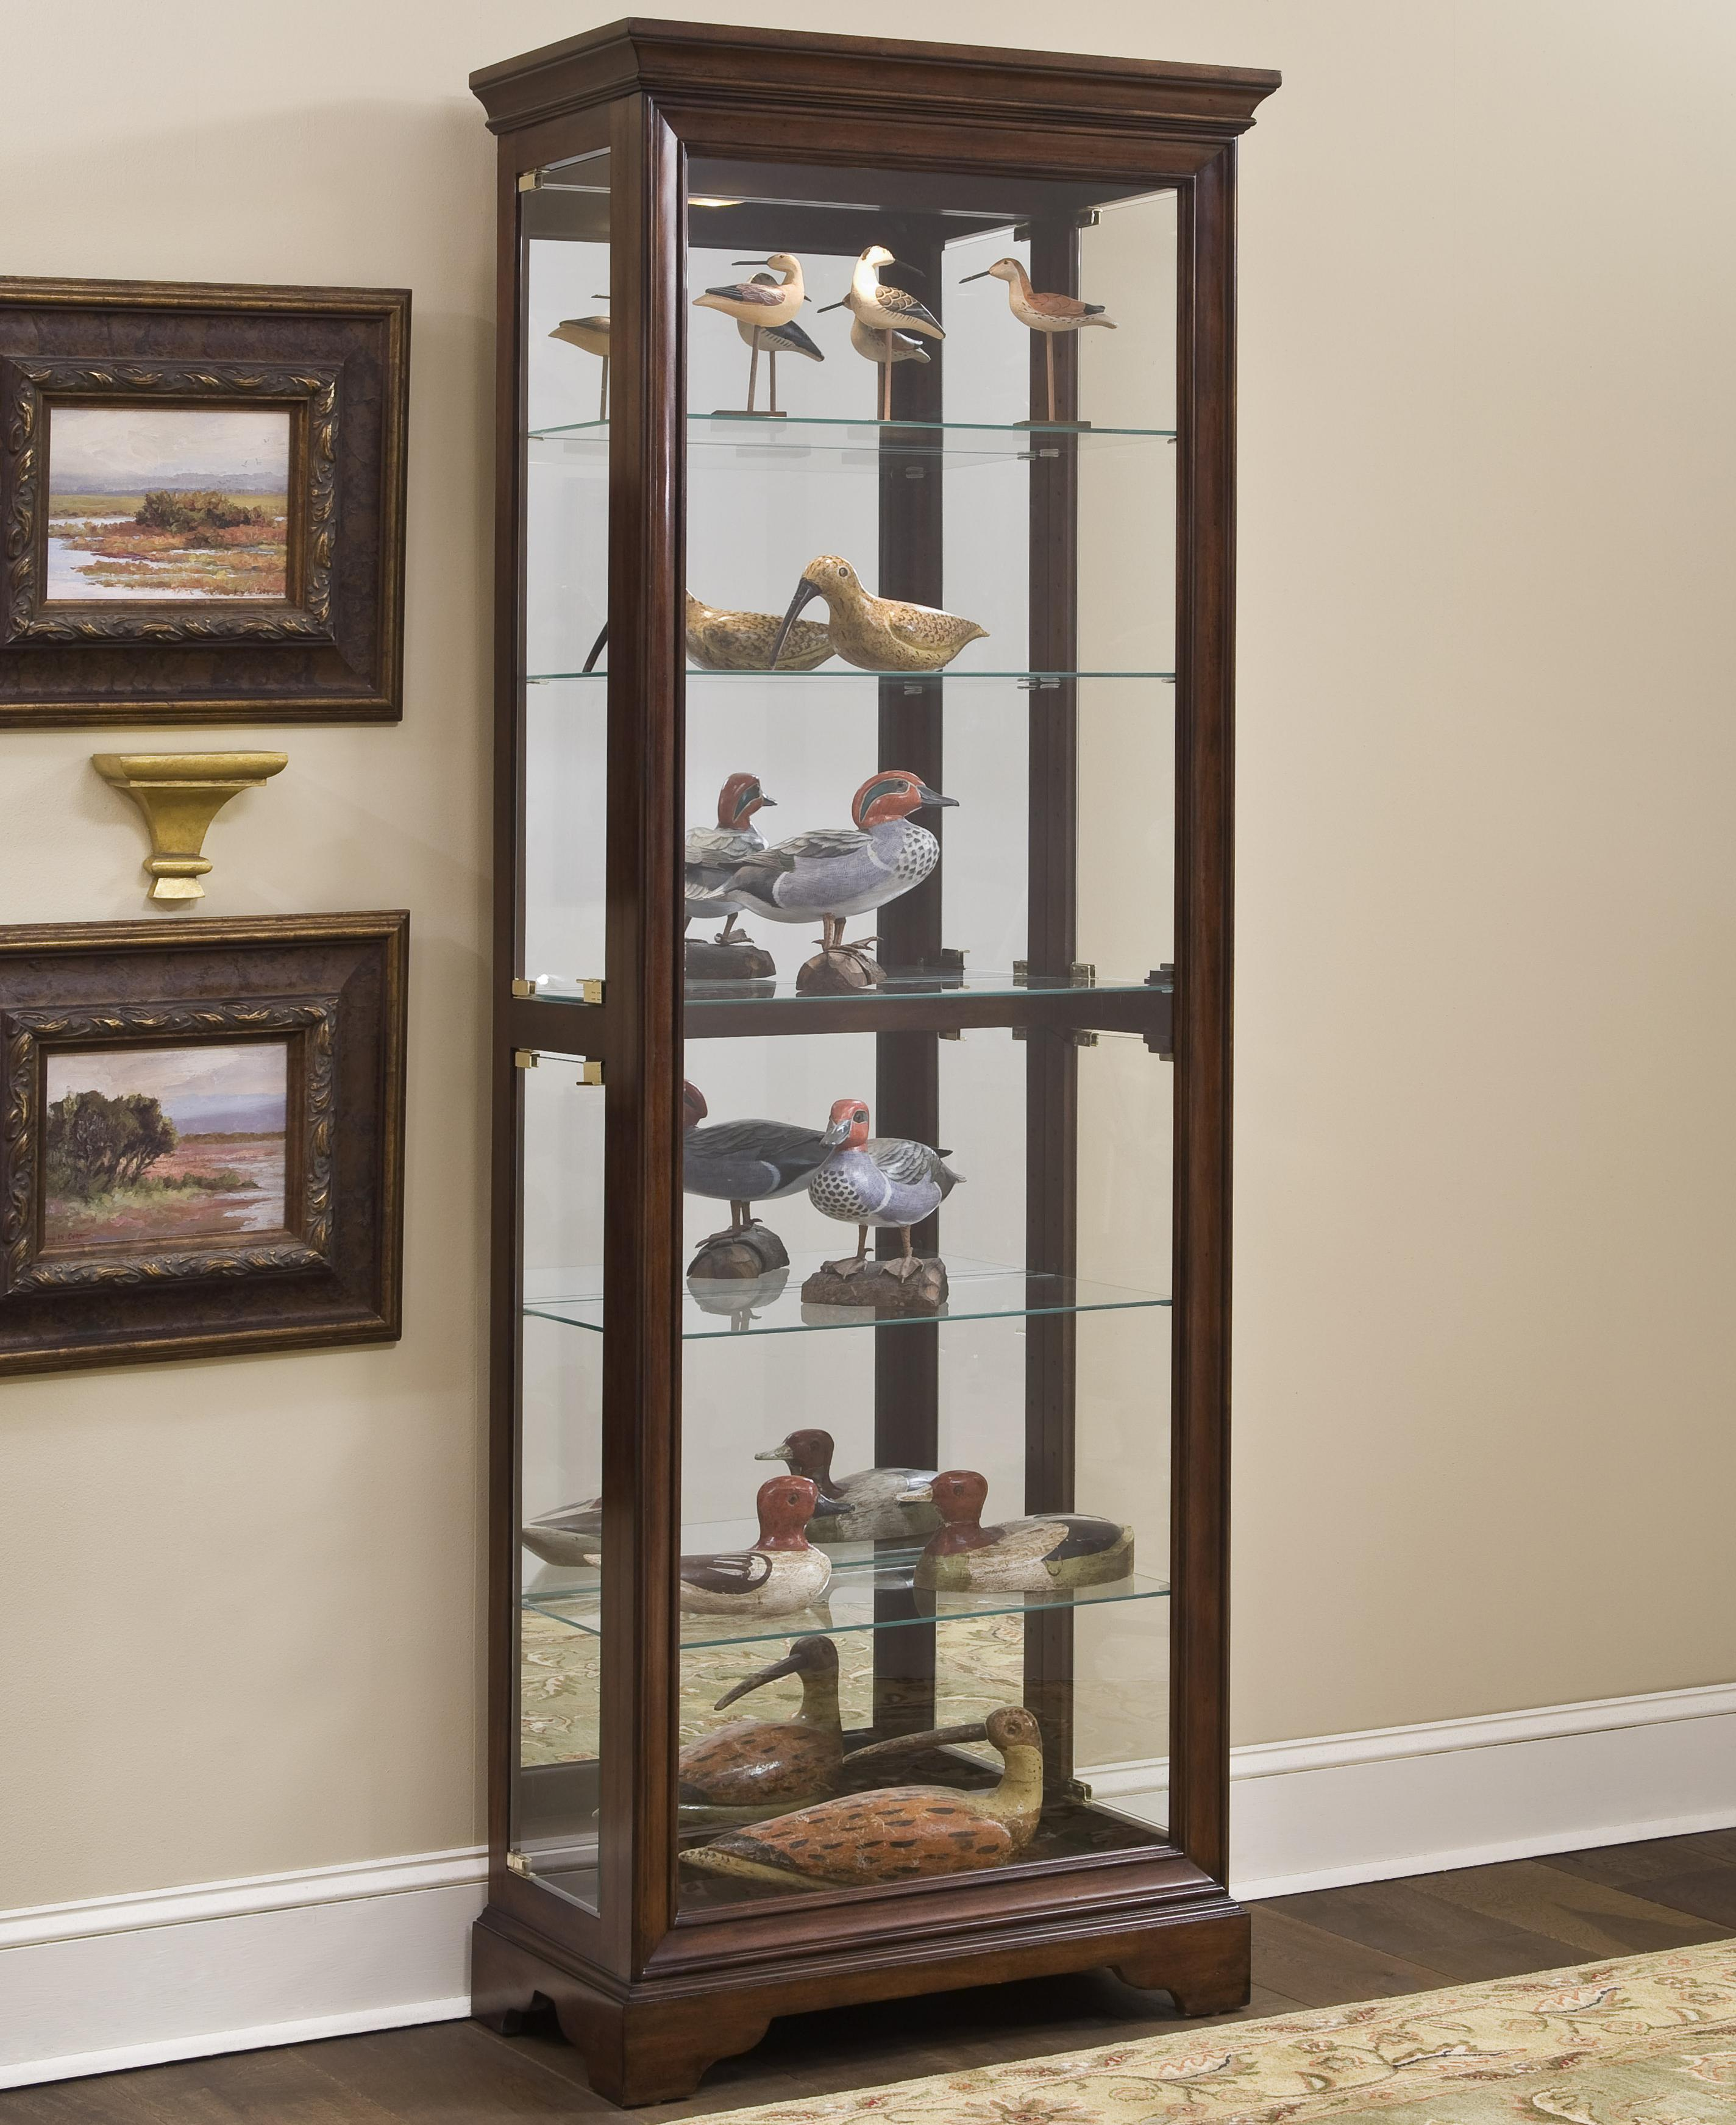 Pulaski Furniture Curios Gallery Curio Cabinet - Item Number: 21308